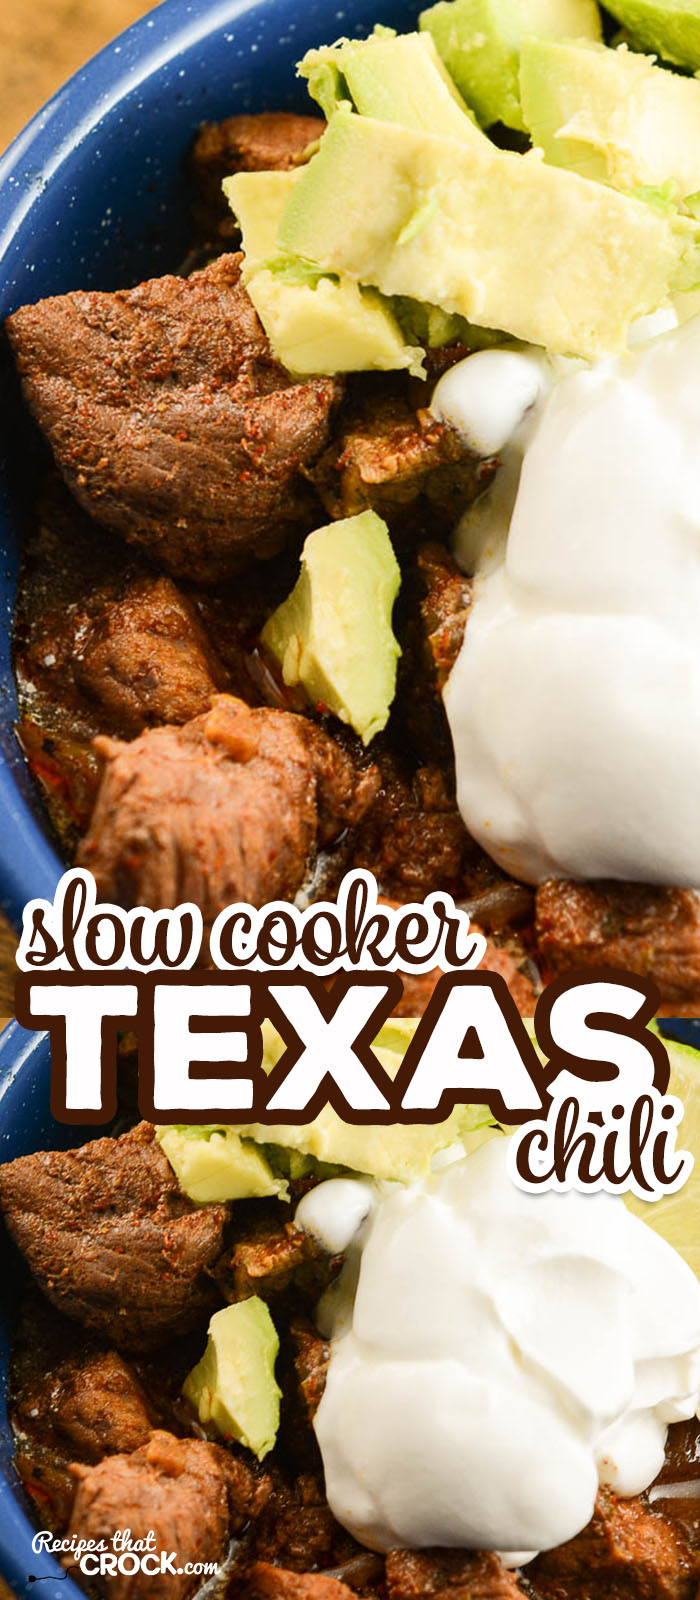 Divine A Yummy Crock Pot Our Slow Cooker Slow Cooker Texas Chili Recipes That Texas Style Chili Paula Deen Texas Style Chili Keto Are You Looking nice food Texas Style Chili